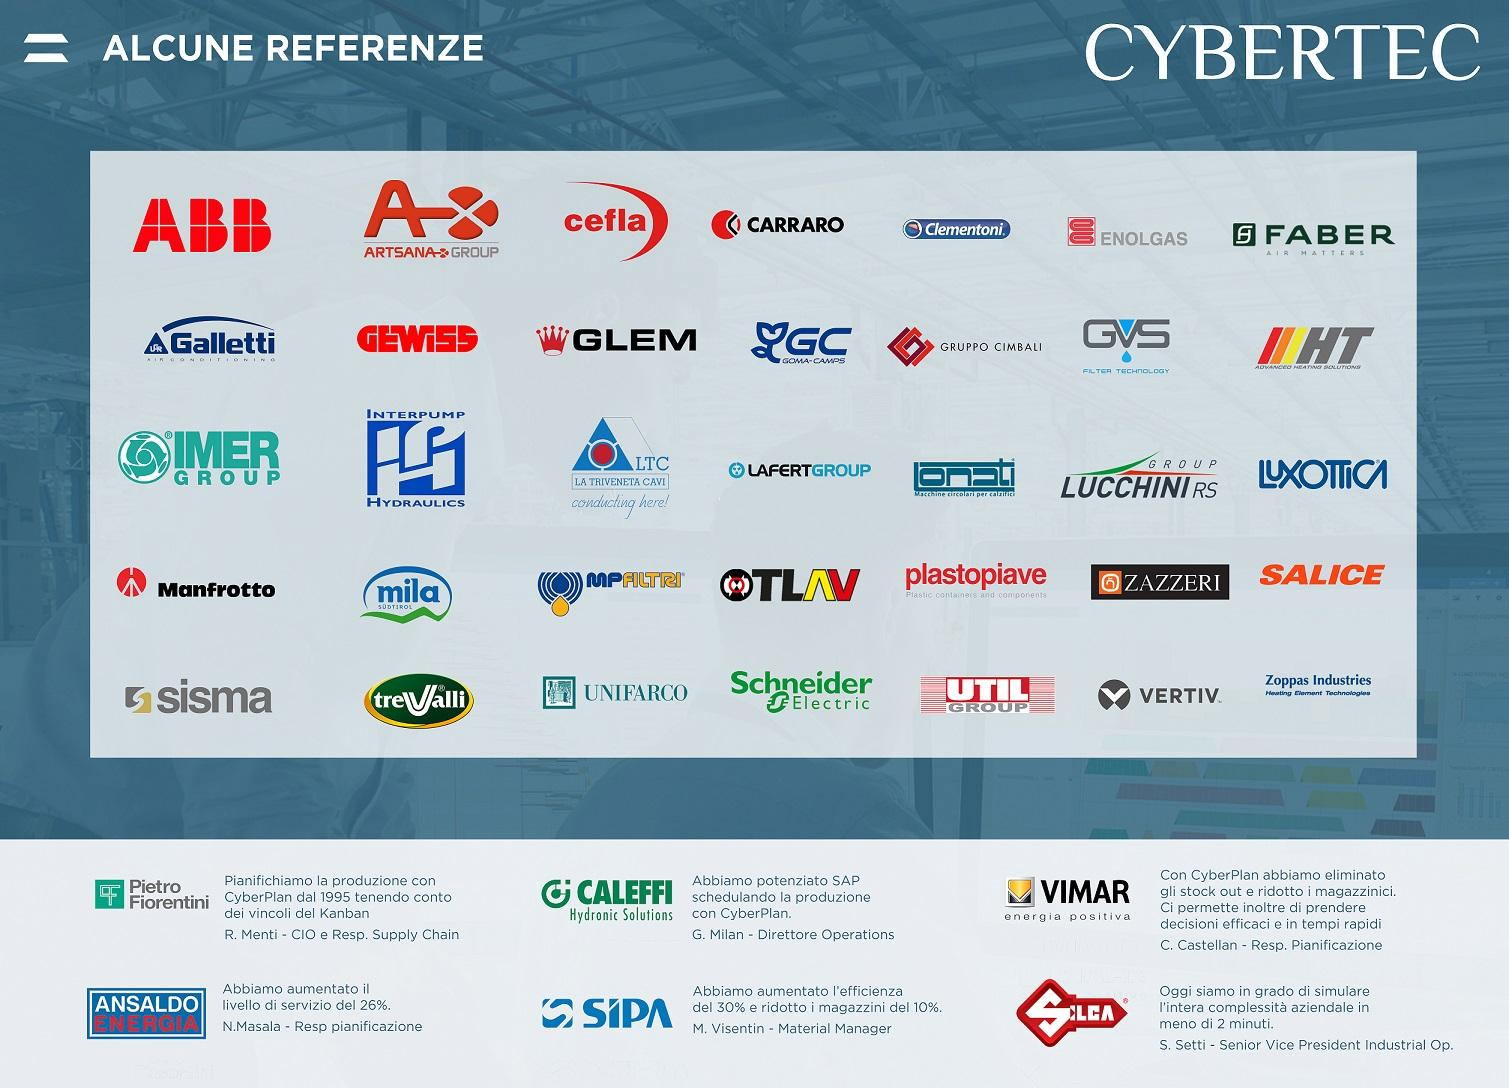 Some of the companies that plan their production with CyberPlan